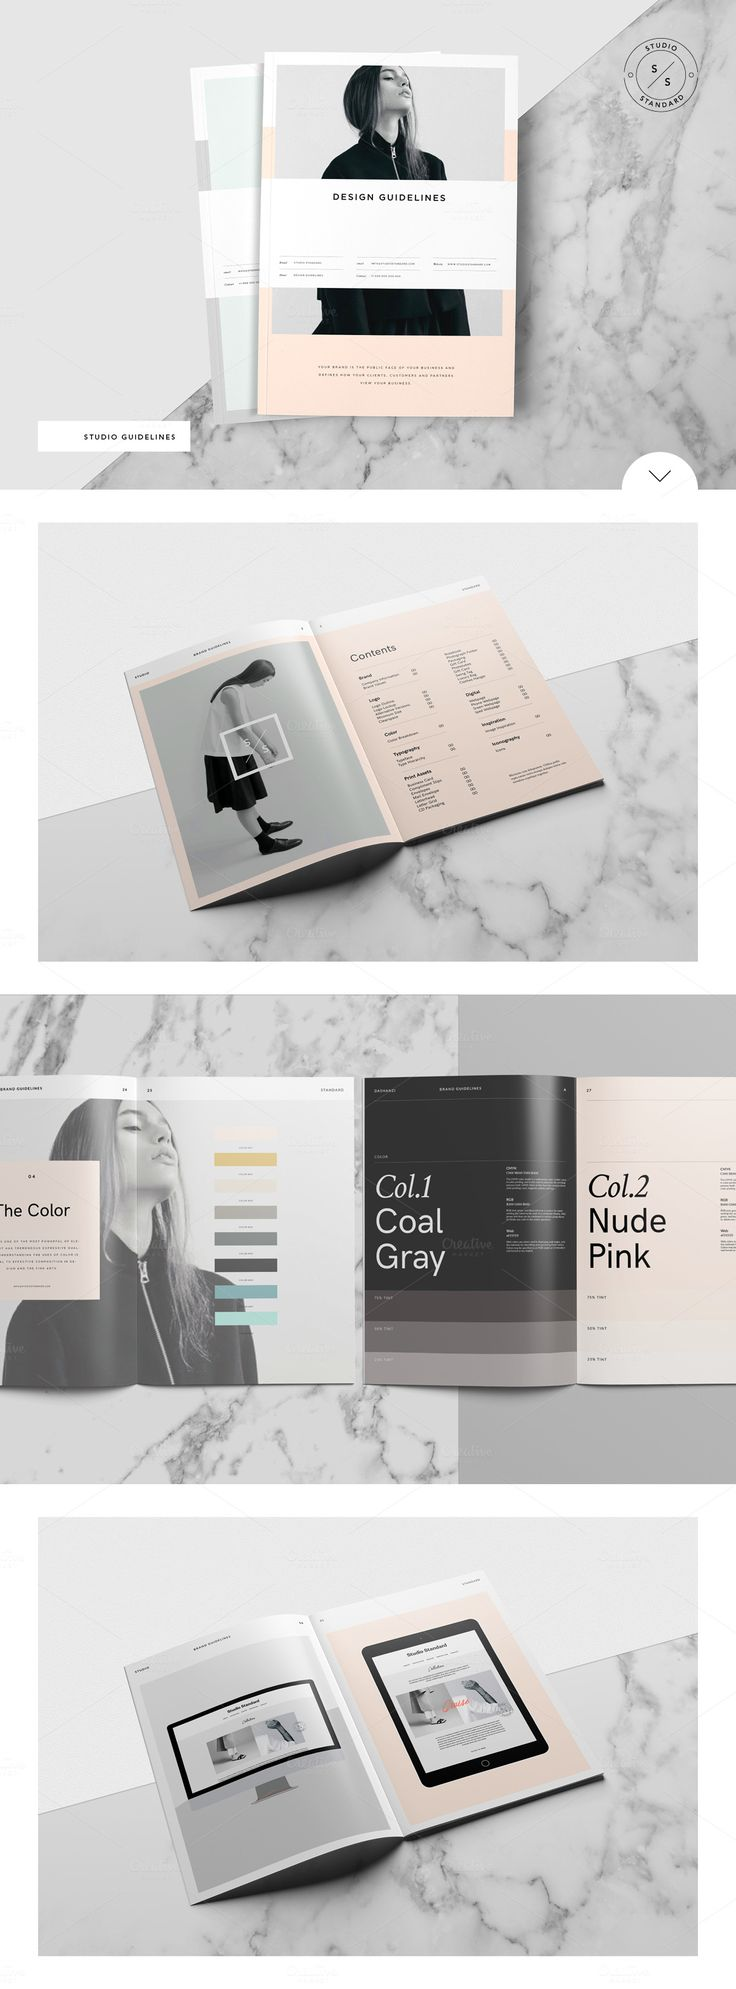 1545 best Graphic Design images on Pinterest | Paper mill, Wedding ...